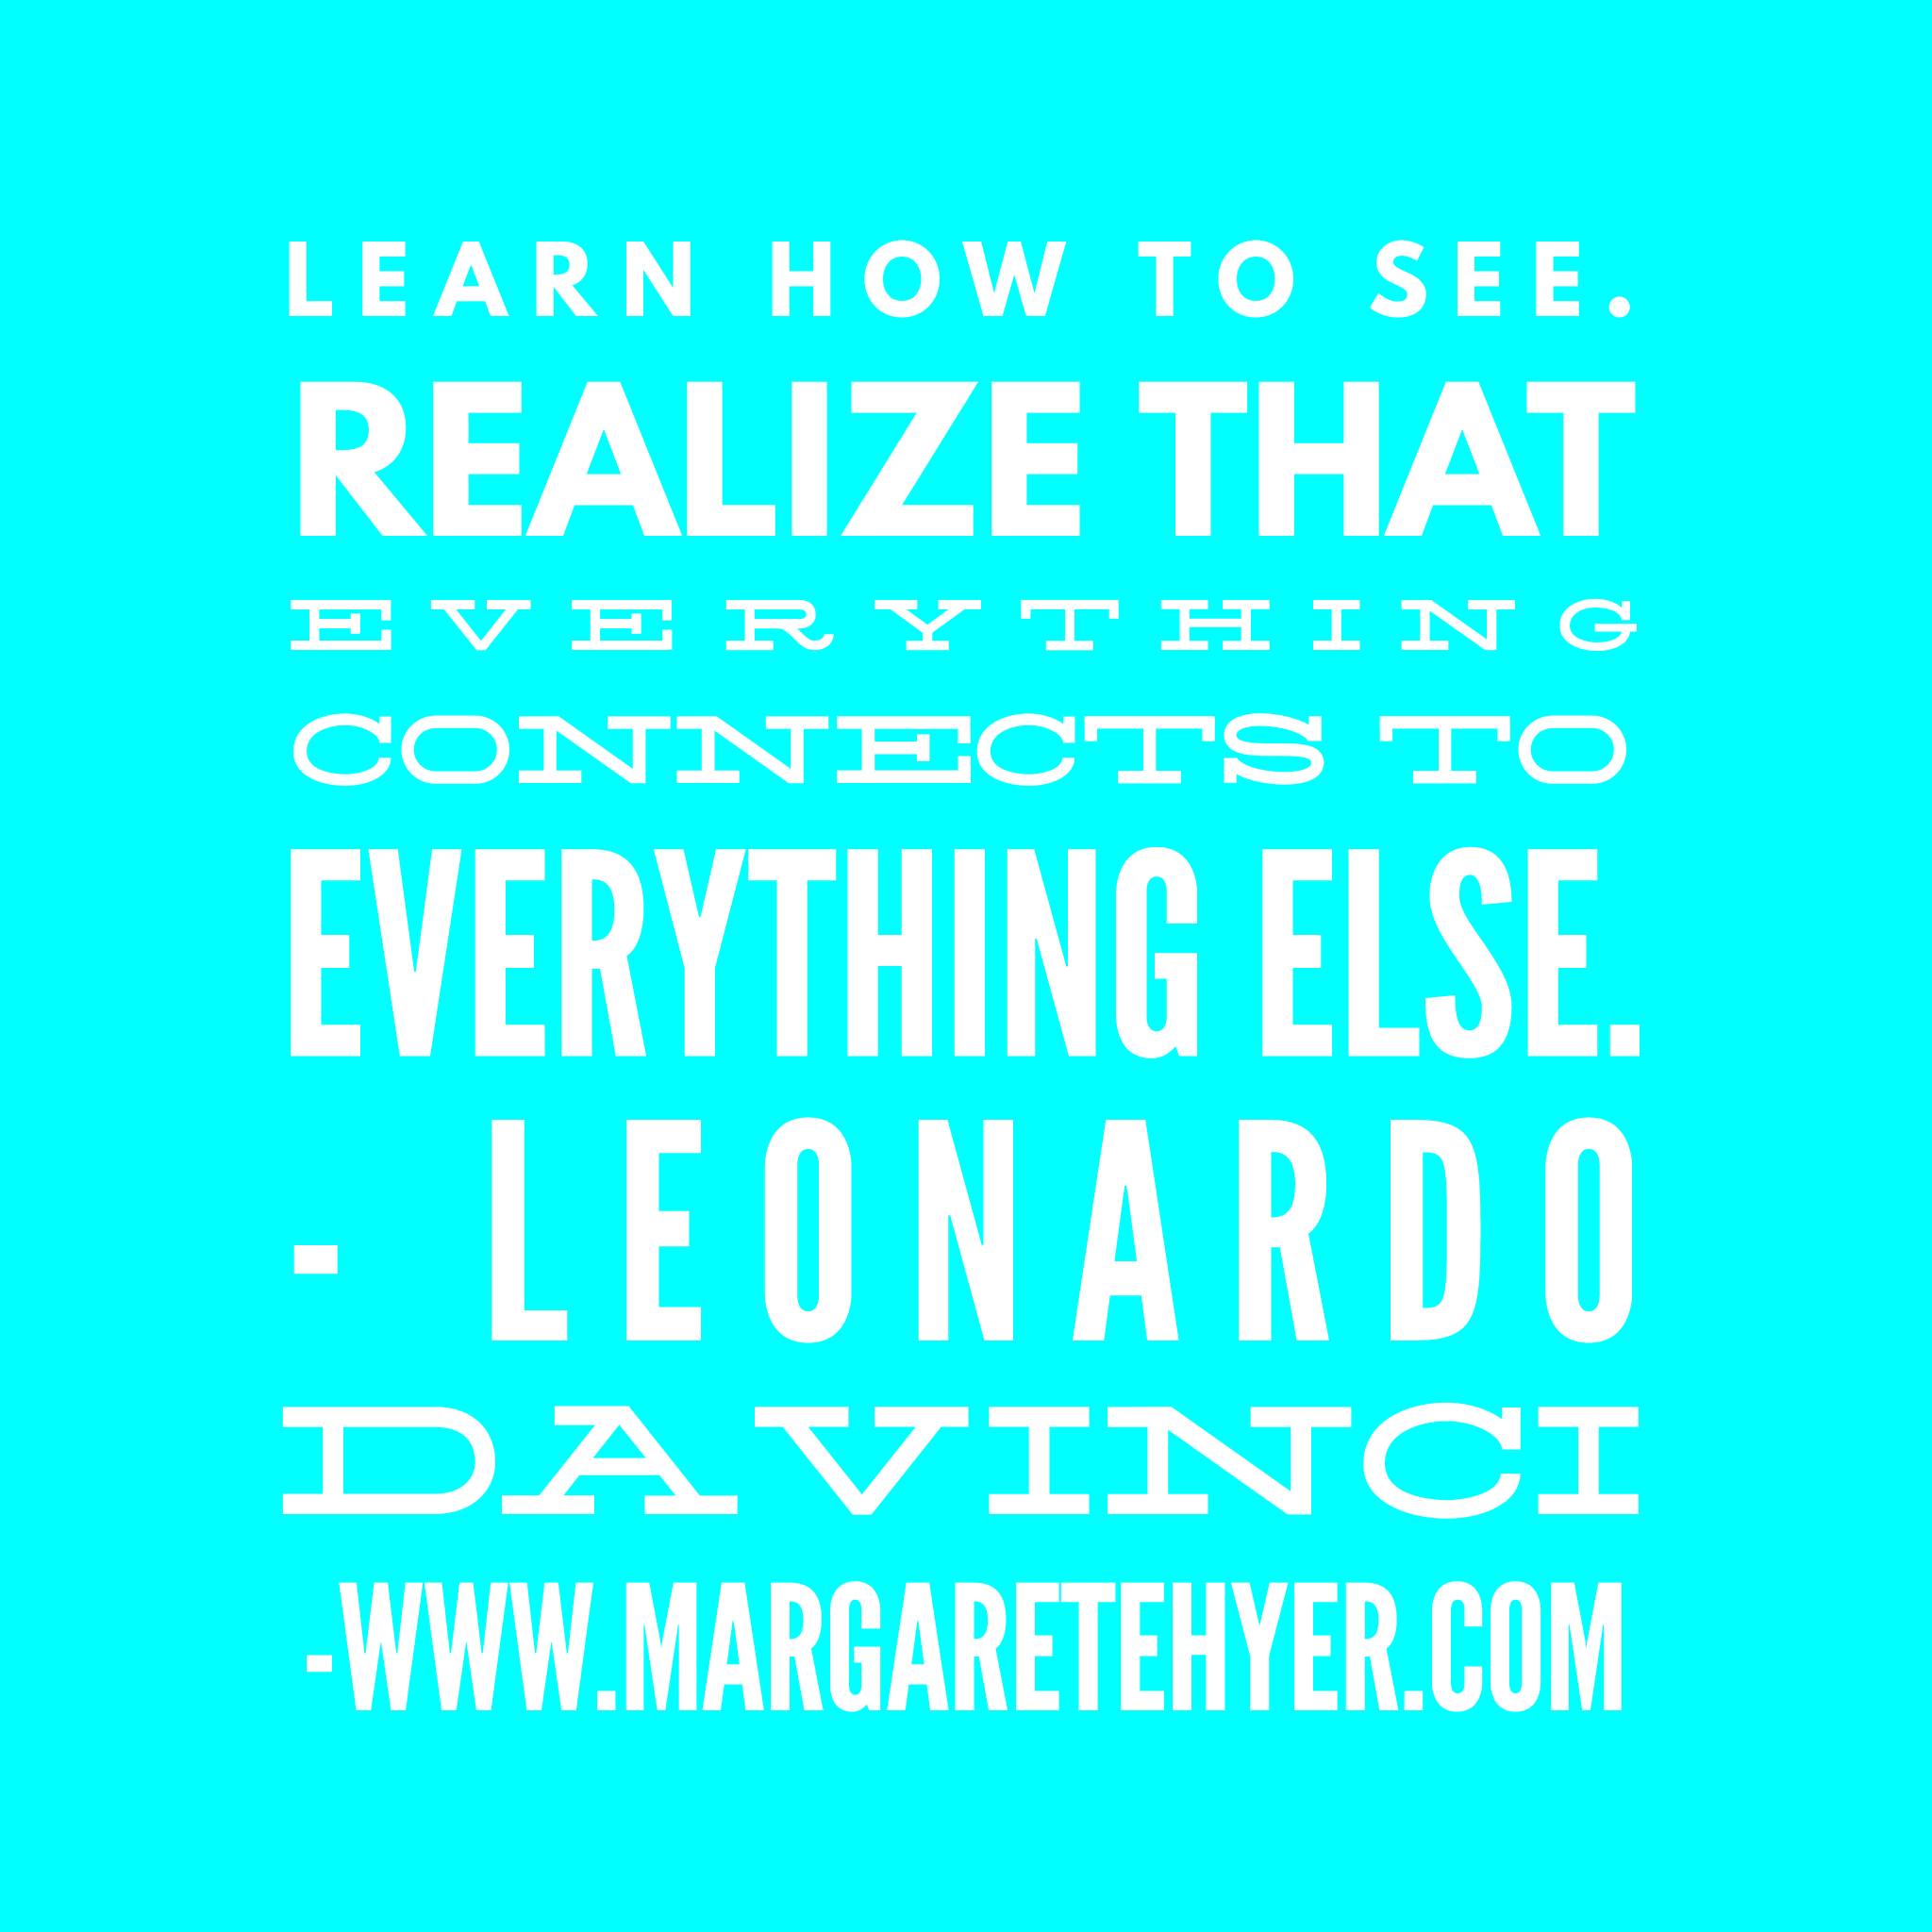 Learn how to see. Realize that everything connects to everything else. - Leonardo da Vinci